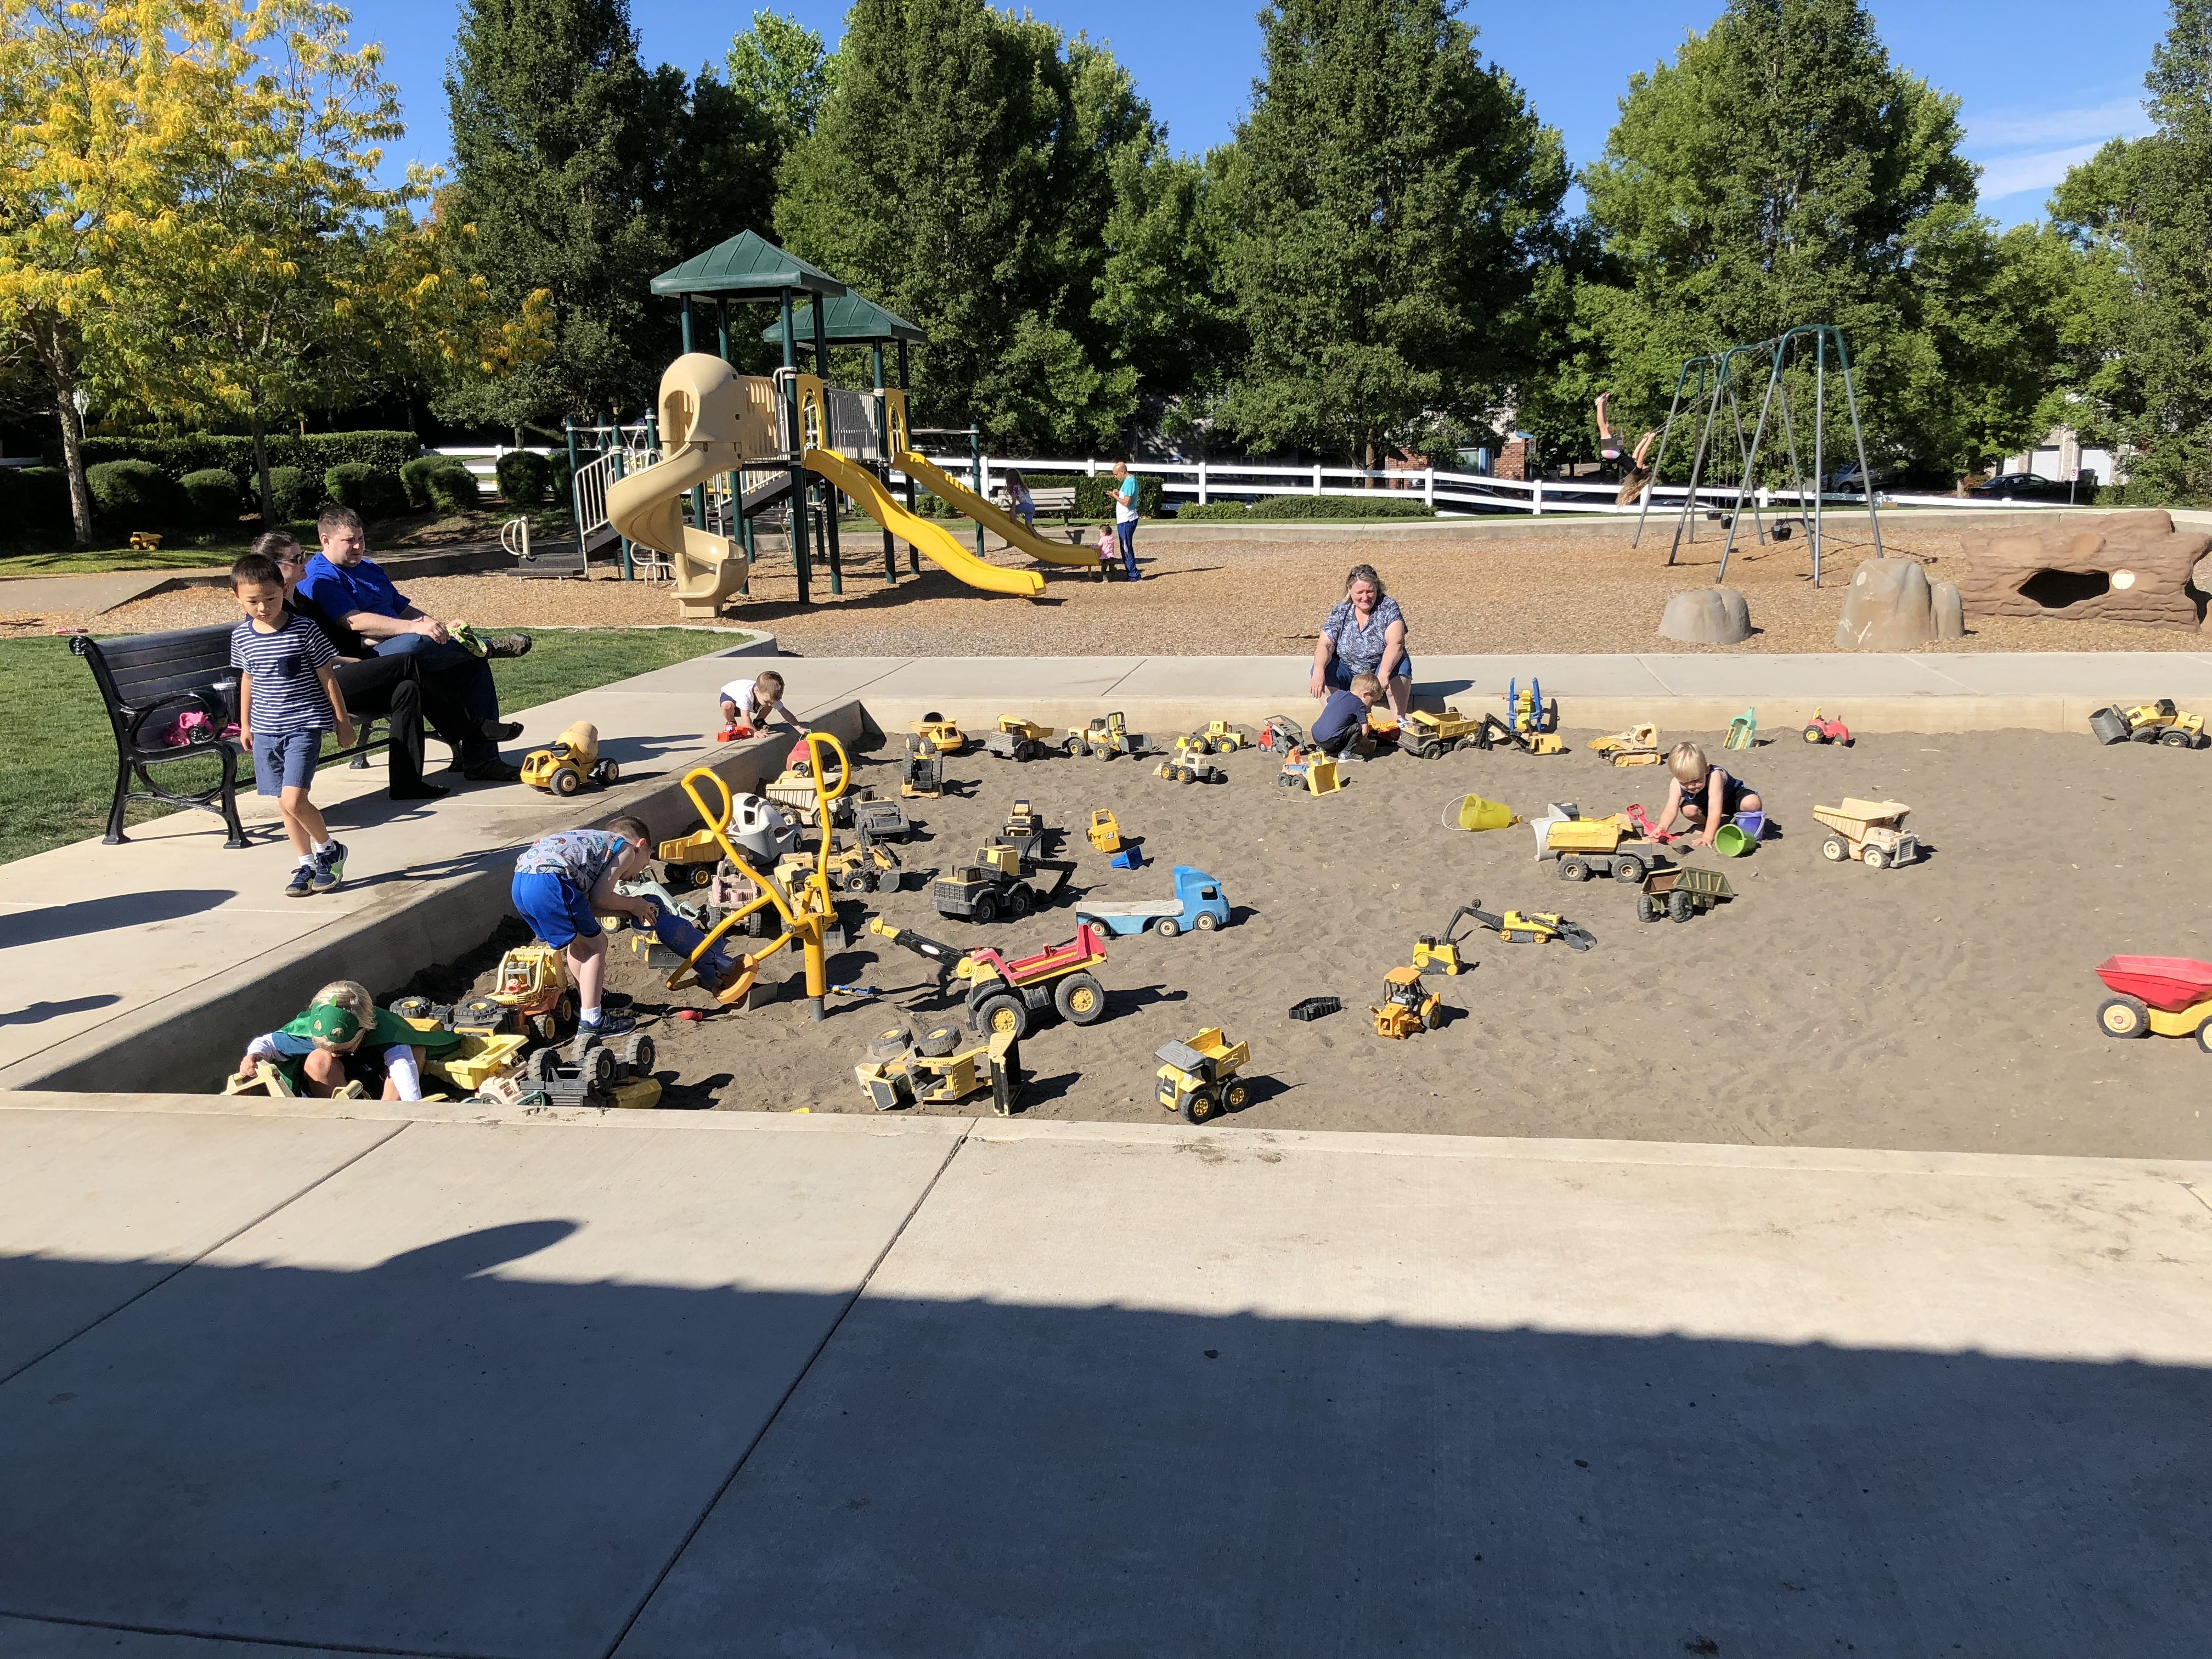 Woodhaven City Park In Sherwood Or Giant Sandbox With Trucks